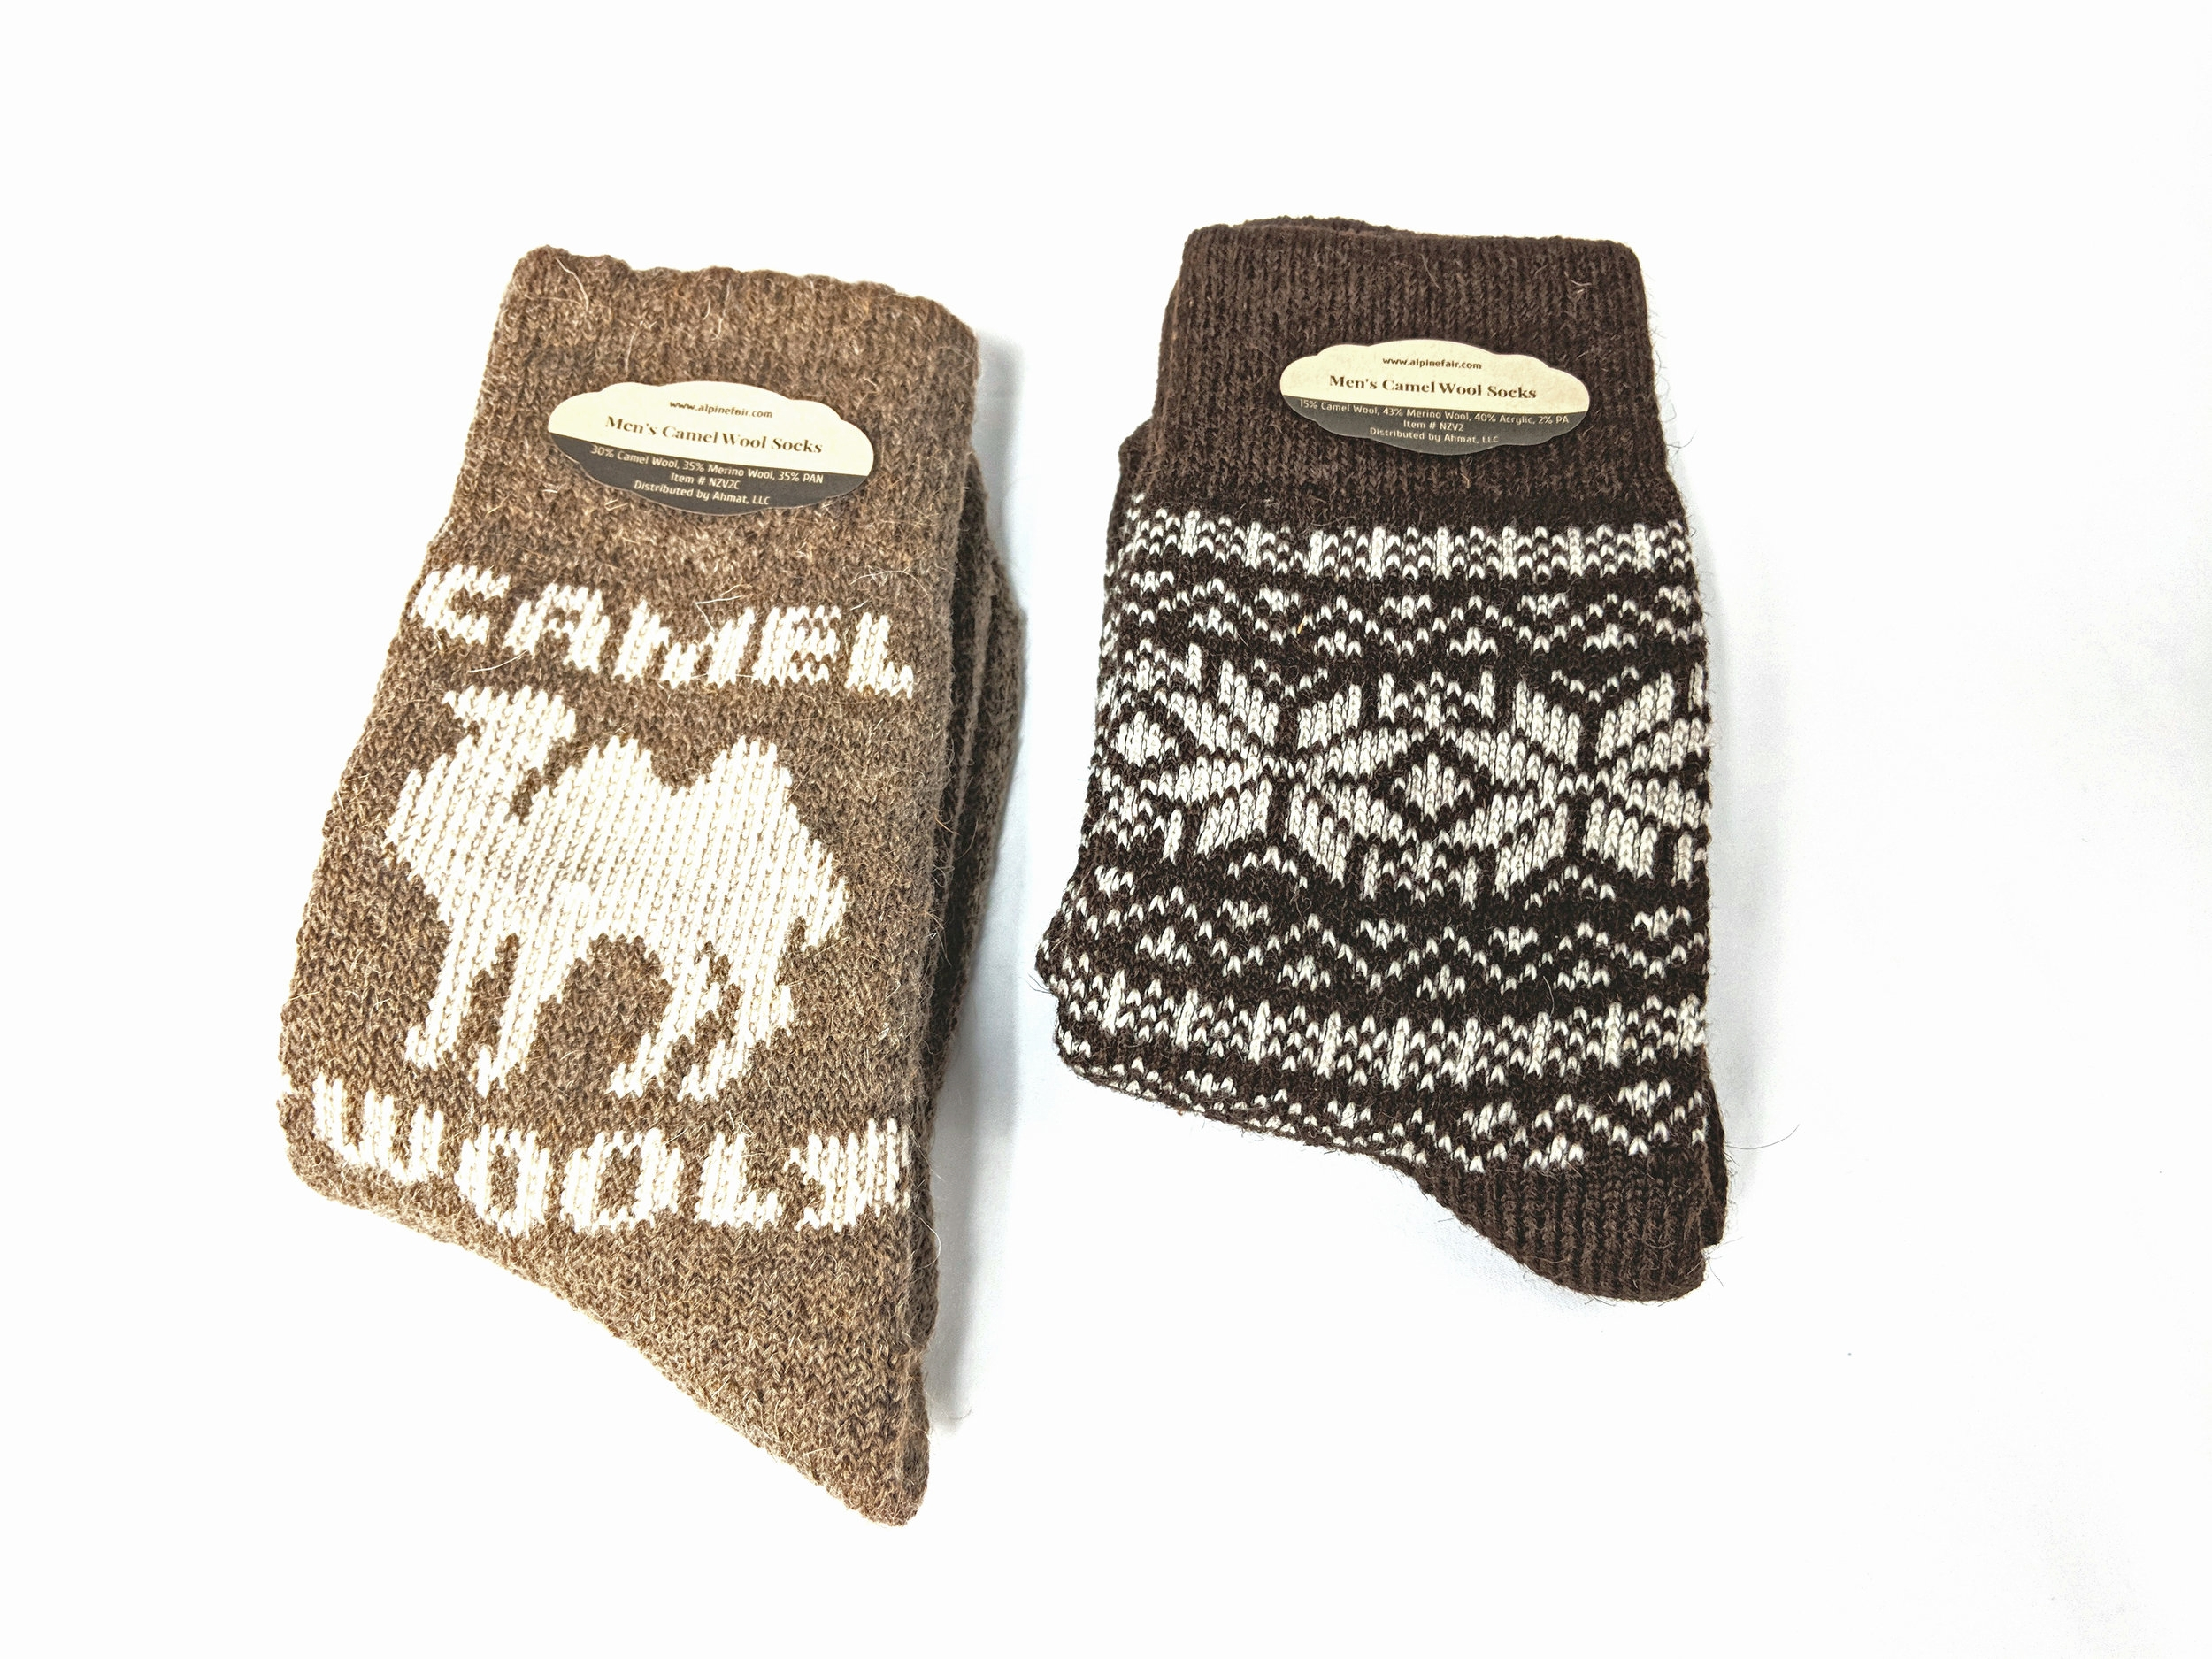 Camel Wool Socks featured in Alpine Fair's Winter Collection - Photo Credit: The Sock Review